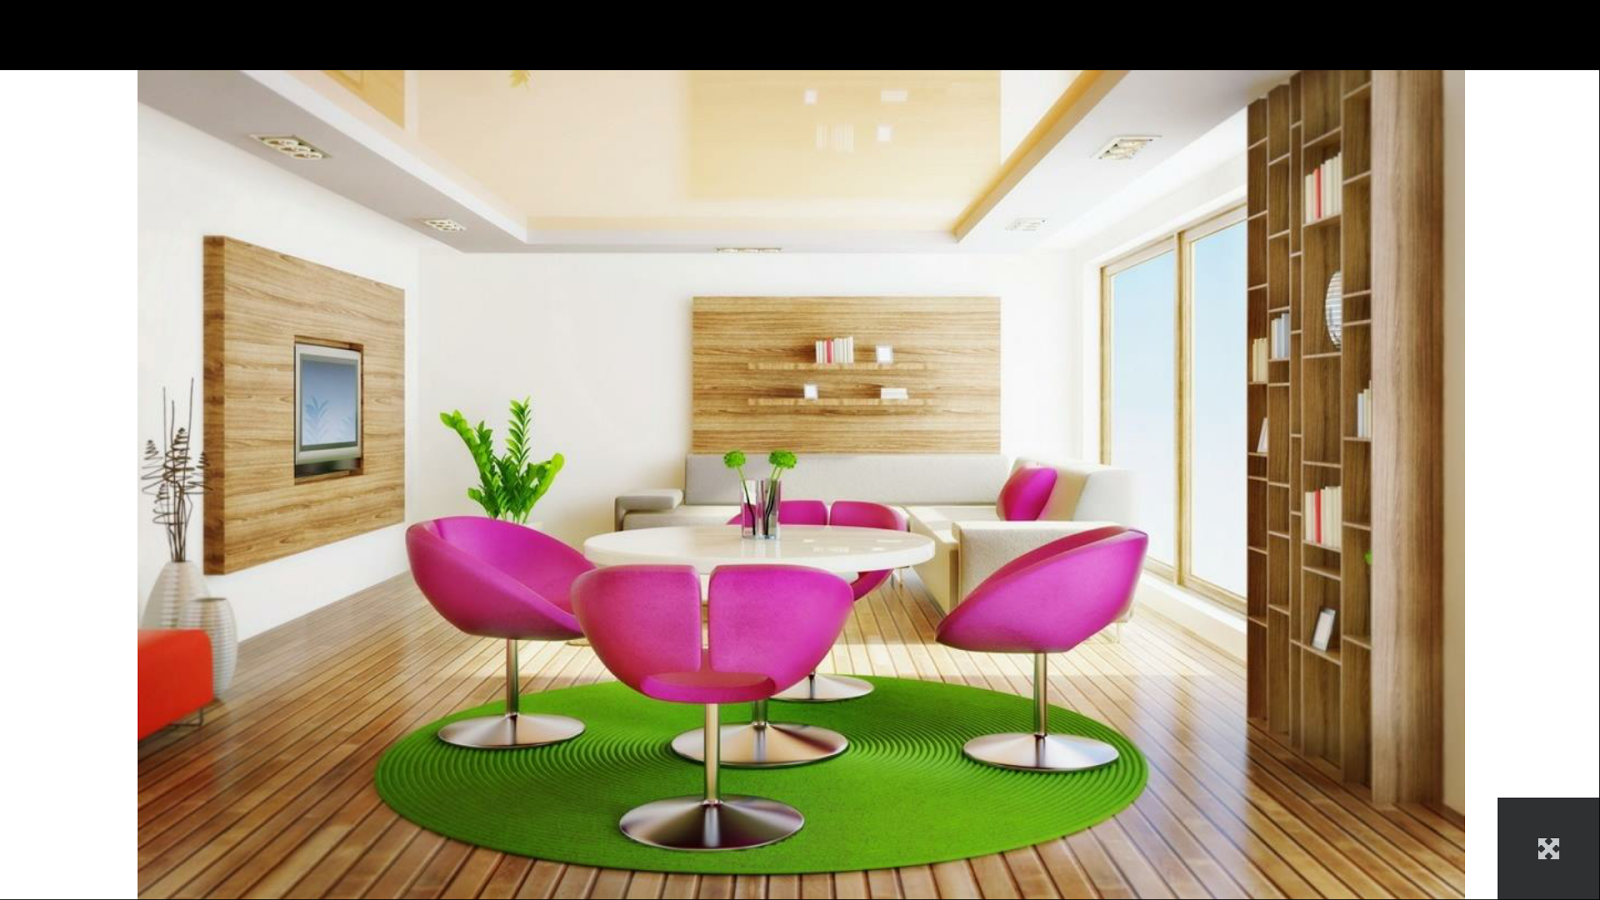 Interior Decorating interior decorating ideas - android apps on google play